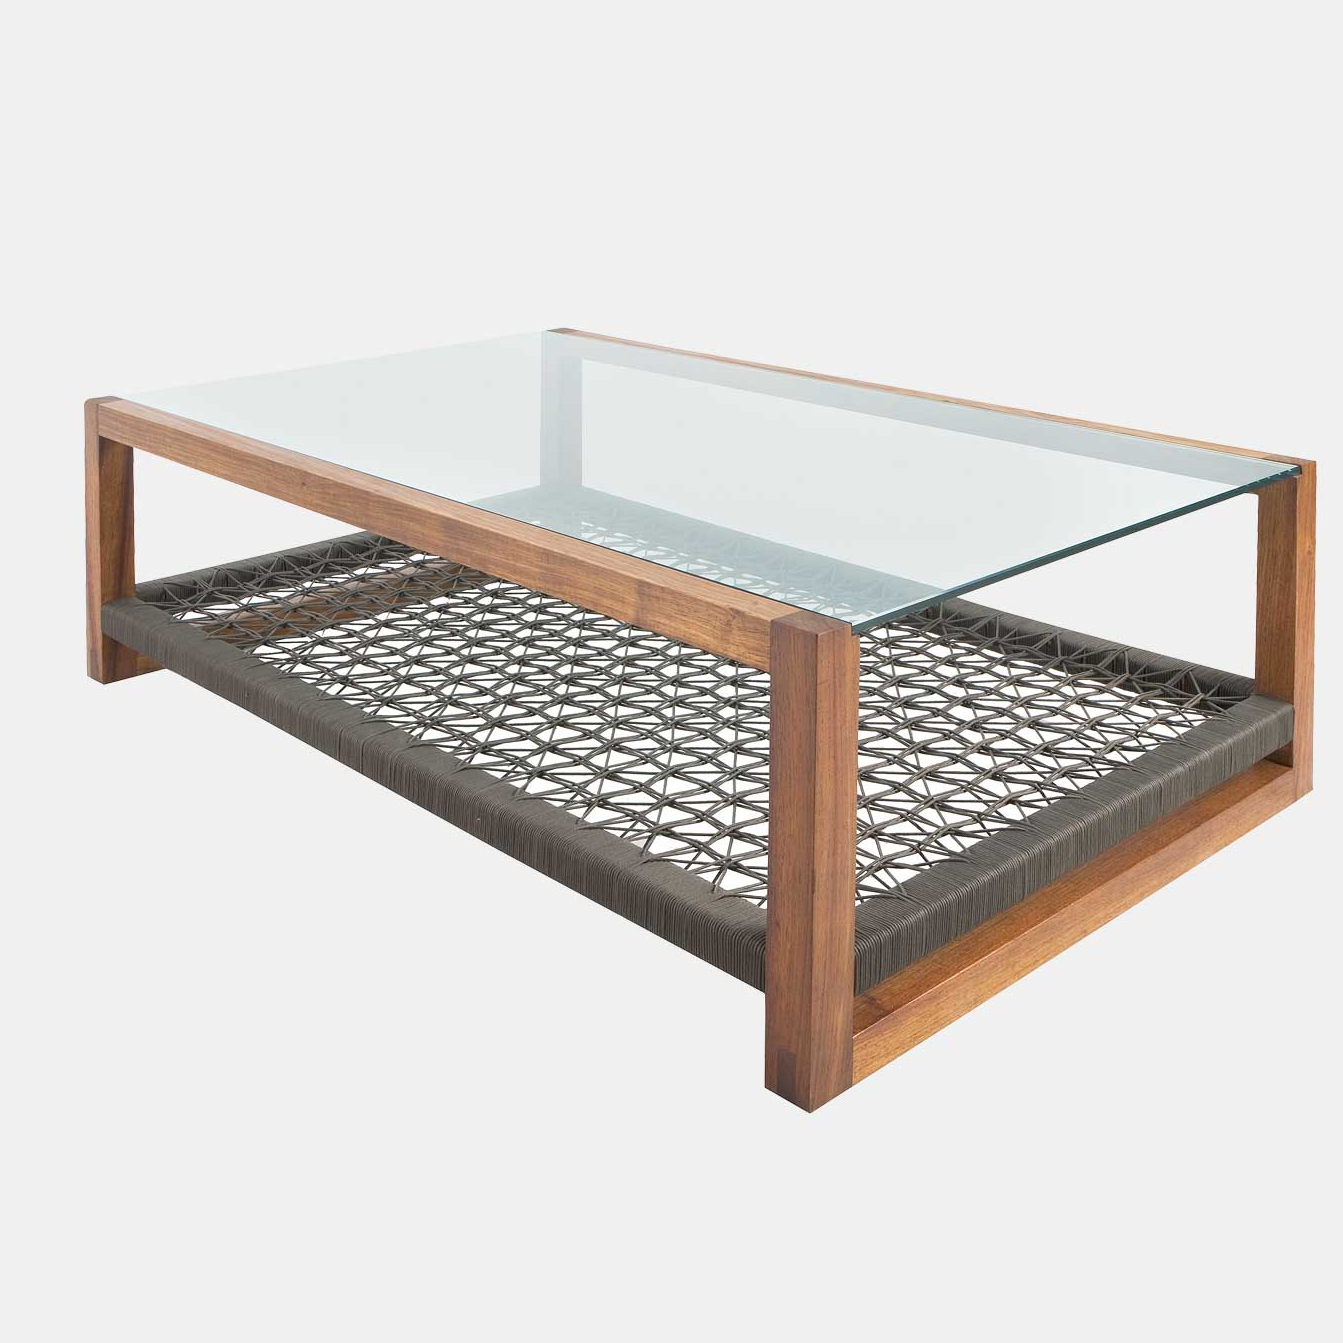 The Cube Coffee Table by Vogel Furniture Design. A solid wooden coffee table available in different timbers and stains with a glass top and customizable woven bottom shelf. You can change the weave & the coffee table becomes something completely different. It is shown here as a calm coffee table in muted tones, or it could be expressive and fun in bold colors.